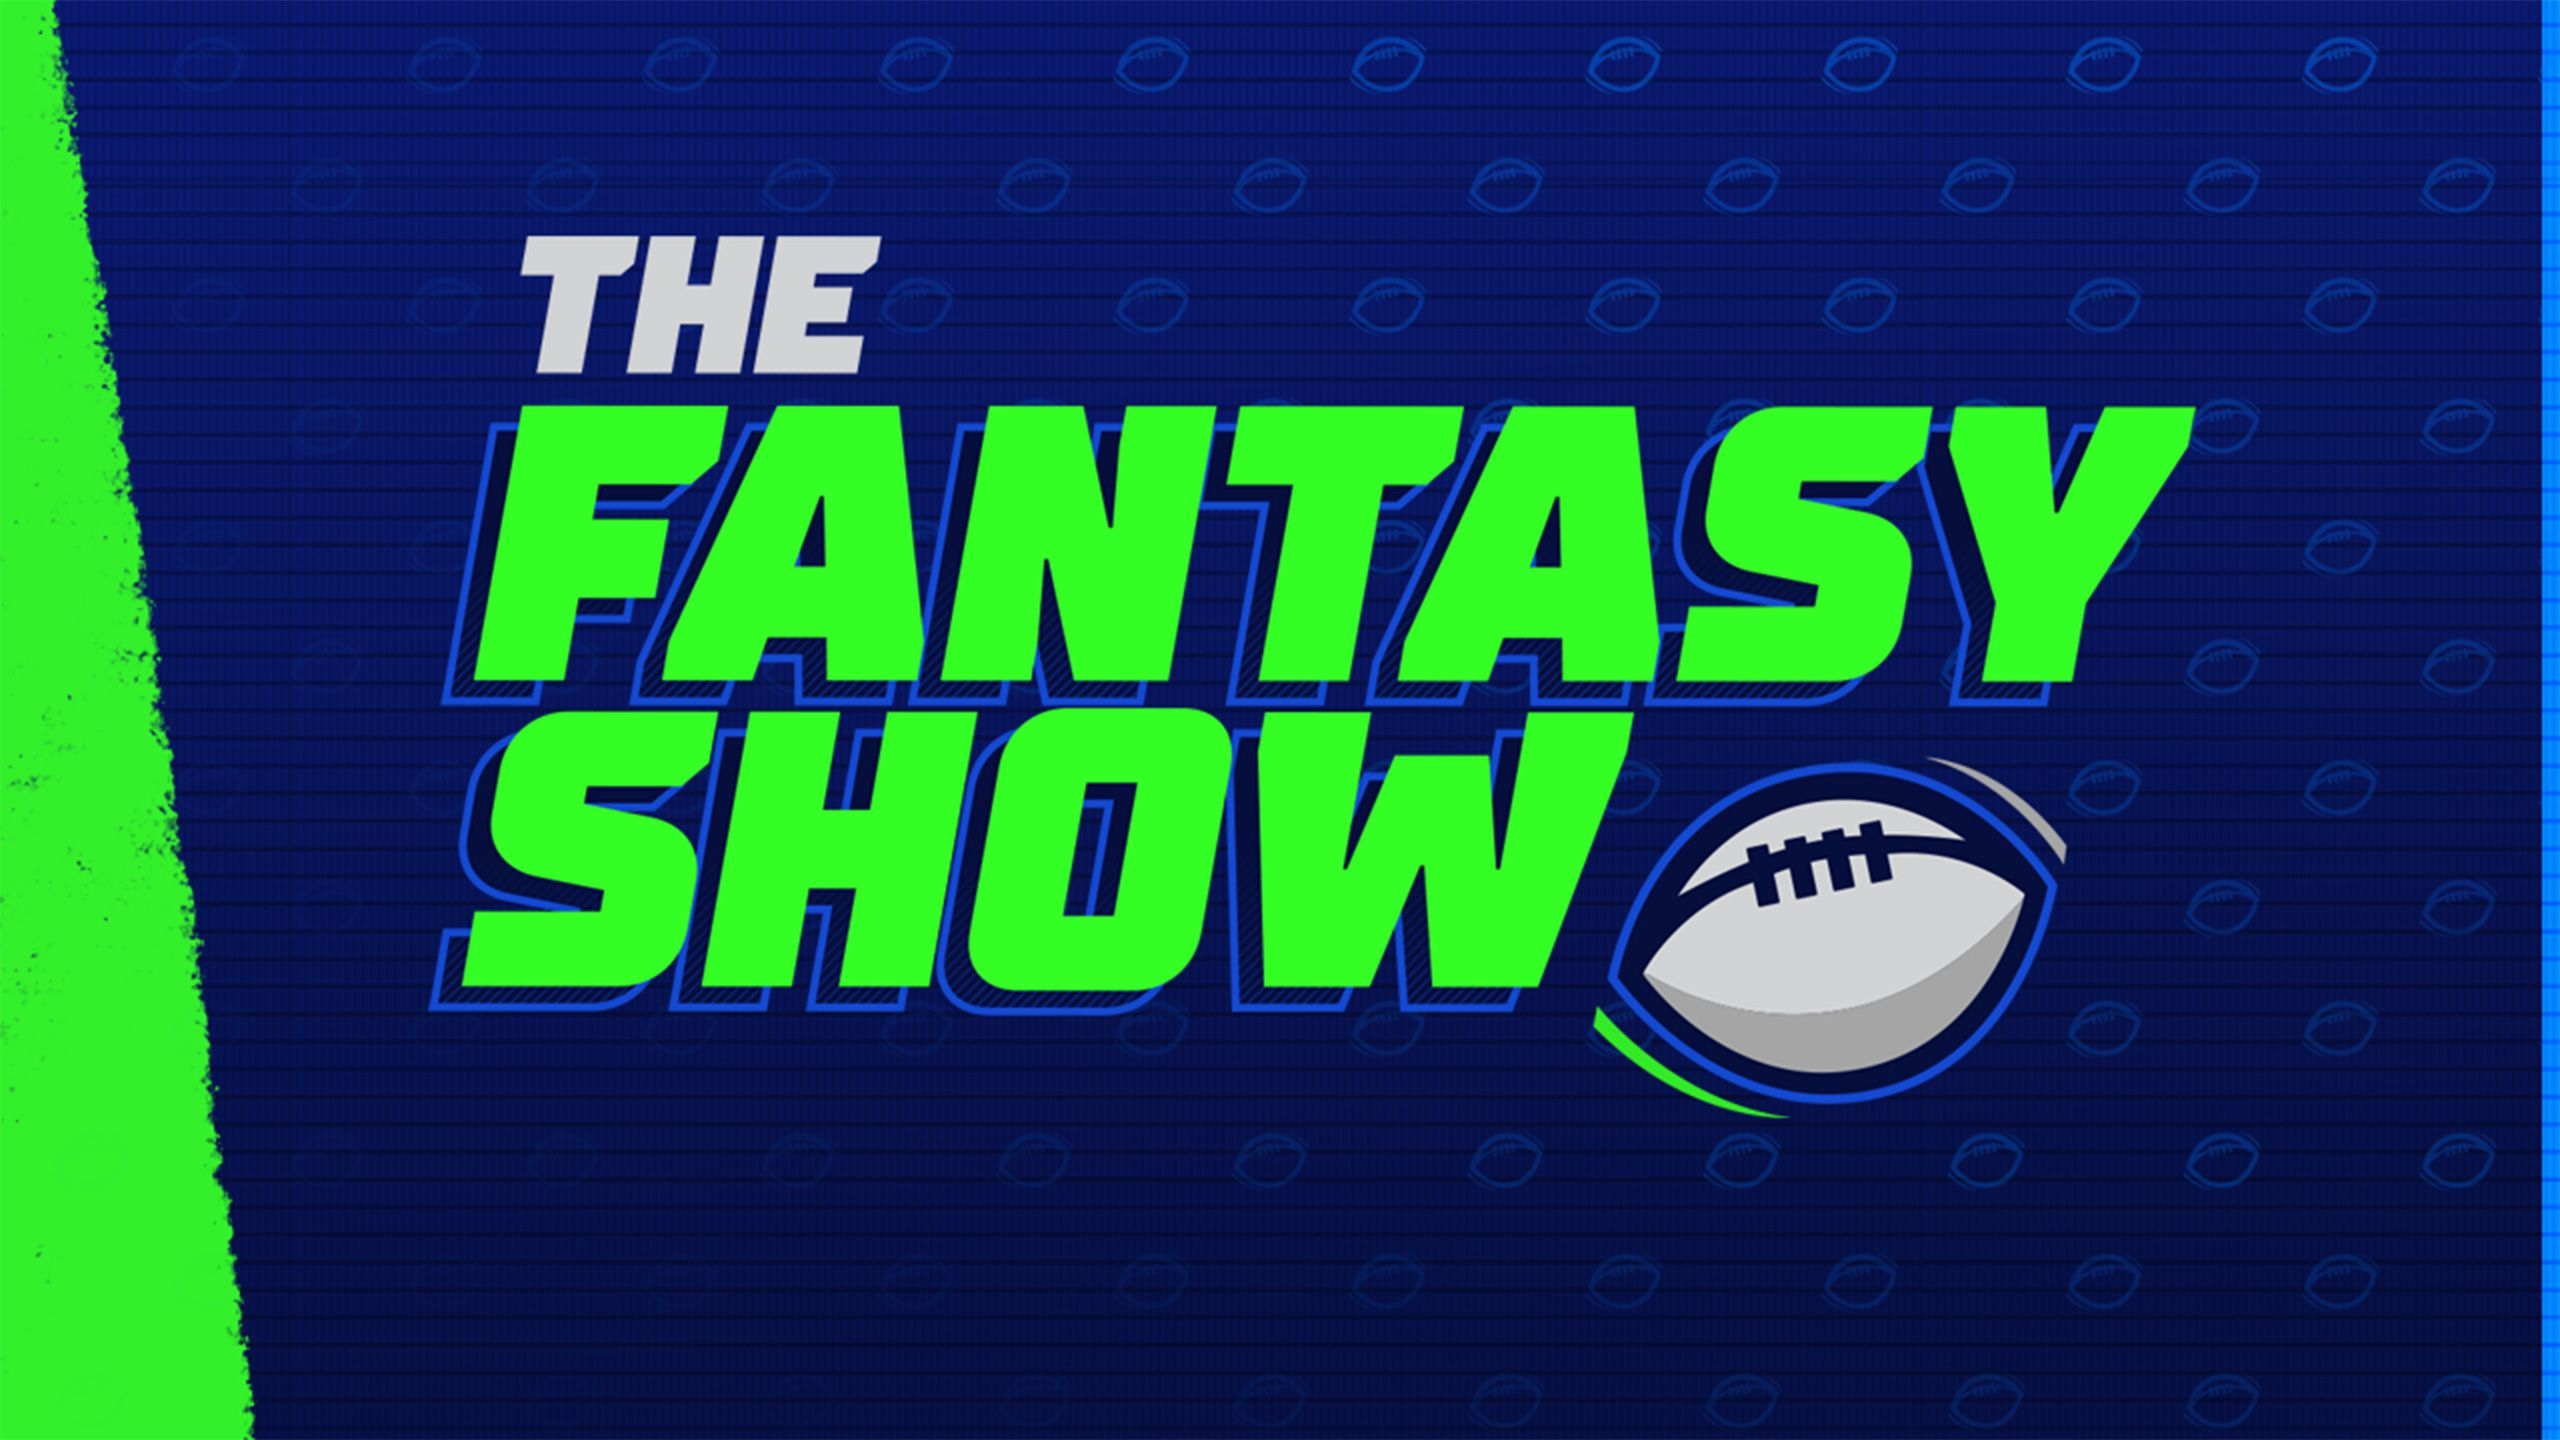 Wed, 11/22 - The Fantasy Show presented by E*Trade